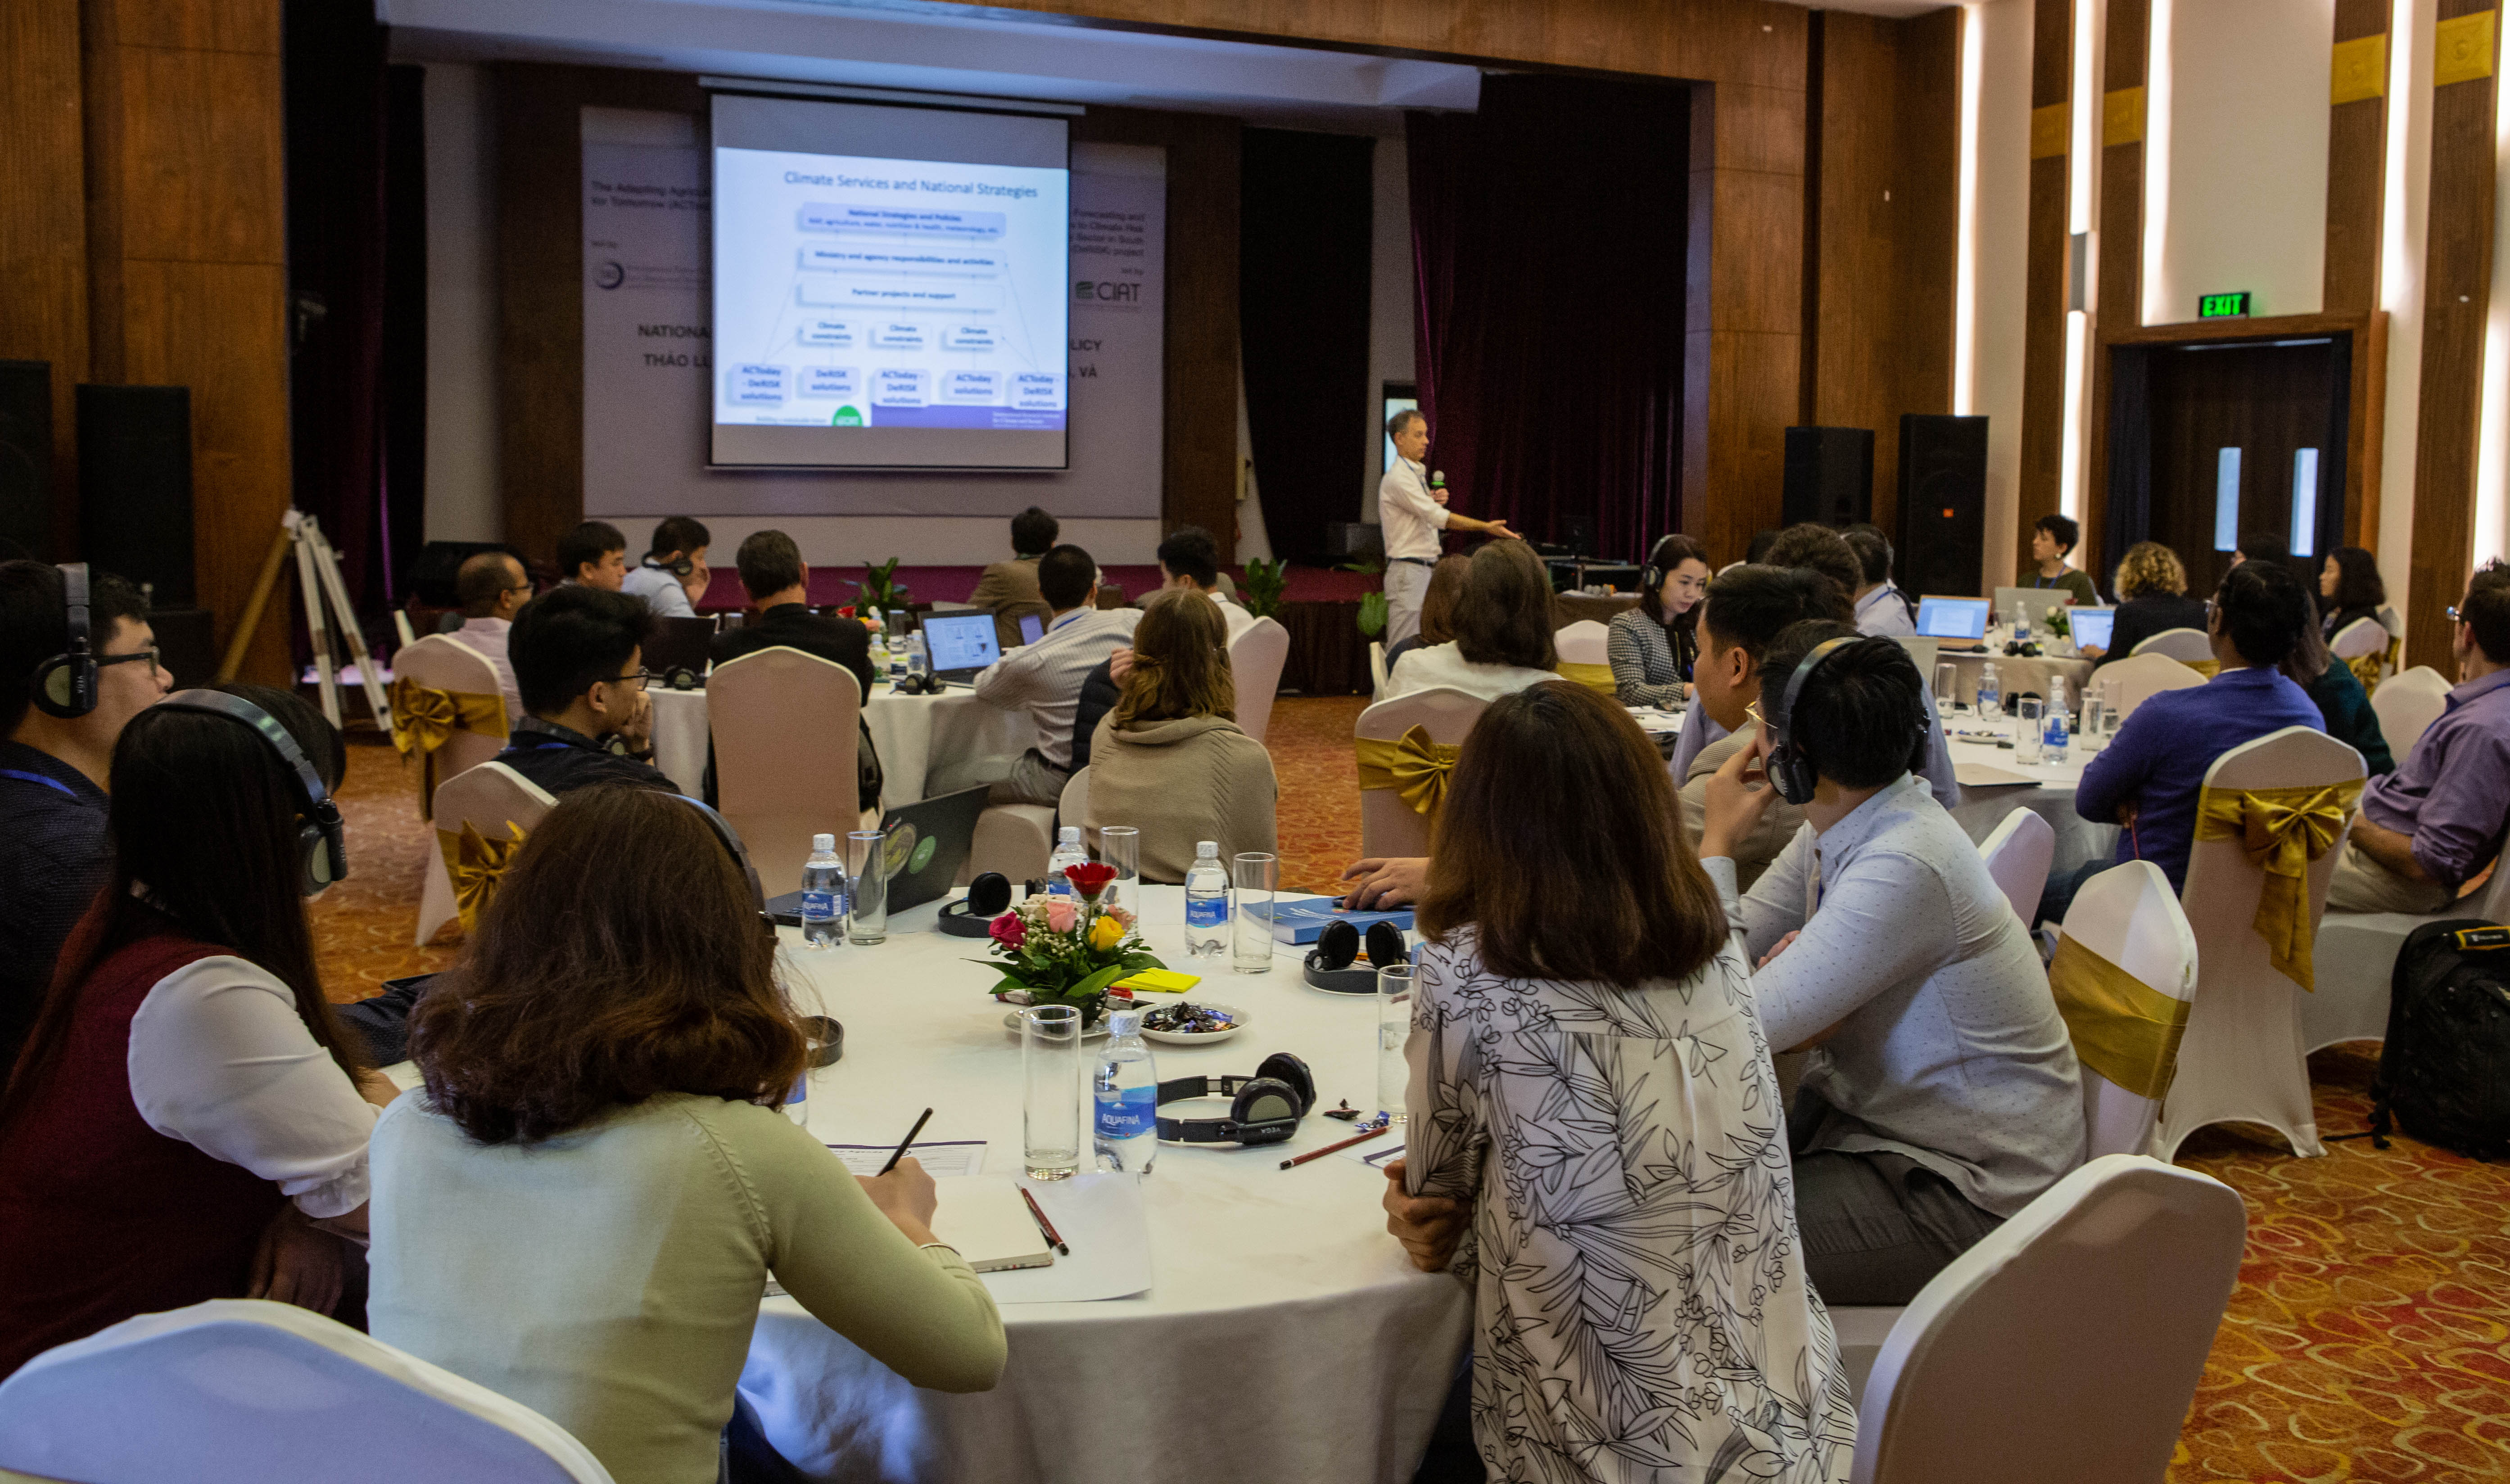 ACToday country lead in Vietnam, John Furlow, presents at the policy workshop. Photo by Jacquelyn Turner/IRI.